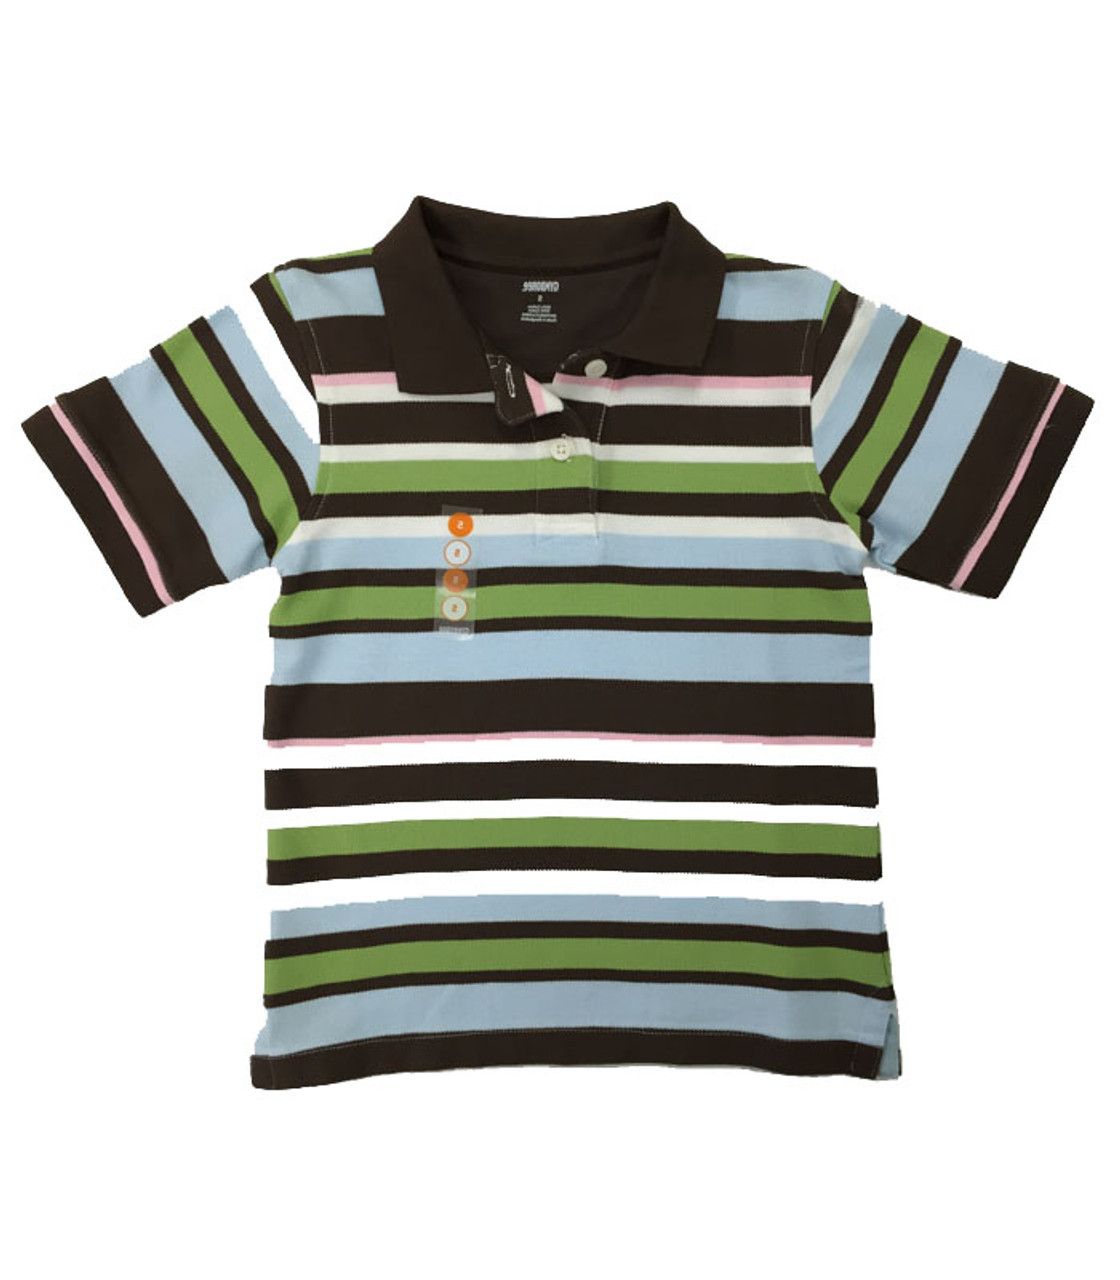 b7dbc01023 Gymboree Boys Striped Polo Shirts | Berri Kids Resale Boutique